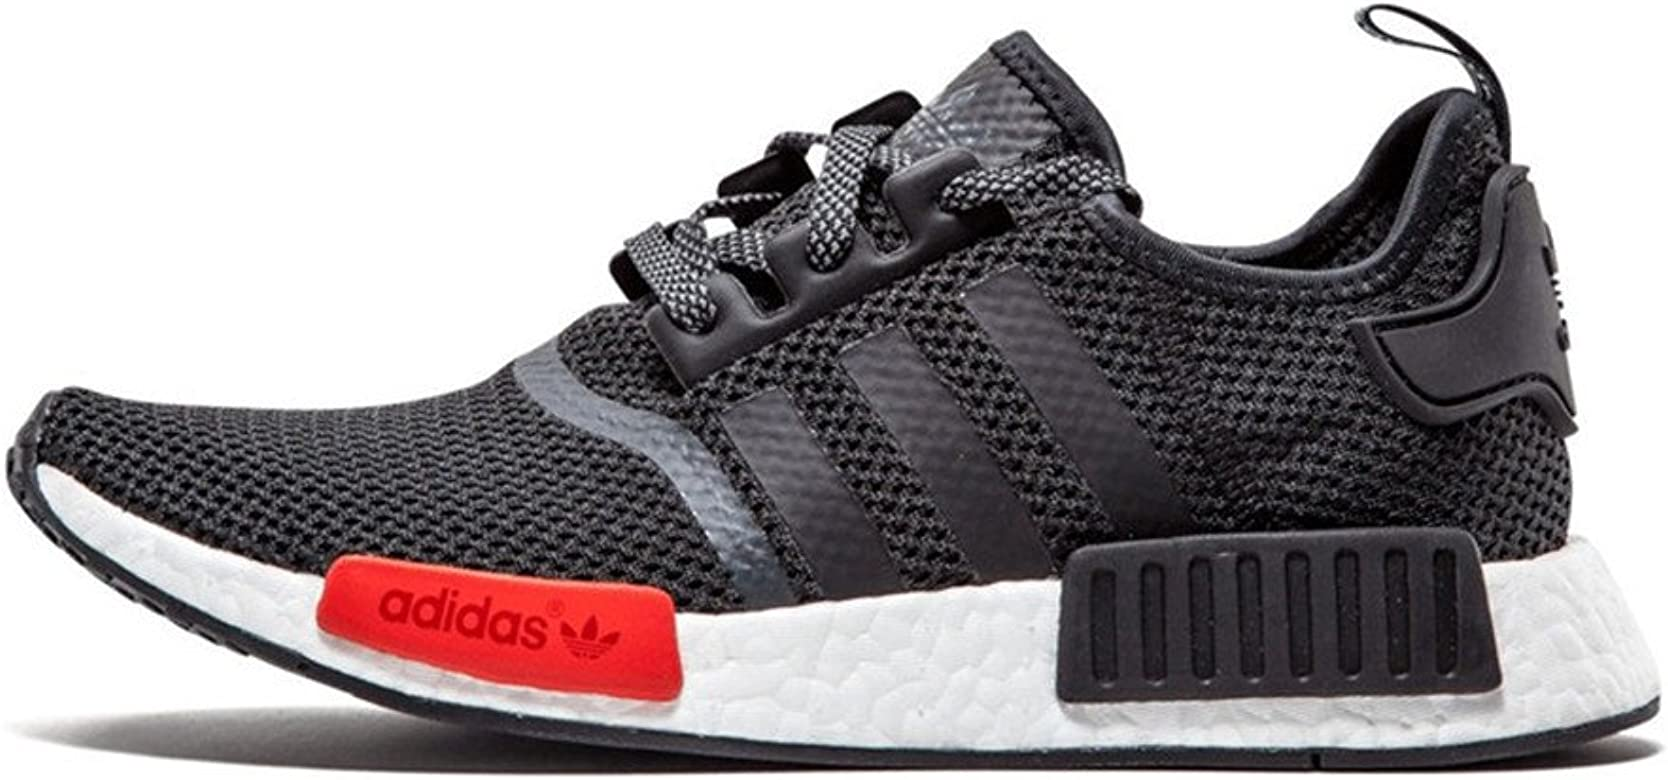 new product 479ee 3411d adidas NMD R1 'FOOTLOCKER EURO RELEASE' - AQ4498 - SIZE 8.5